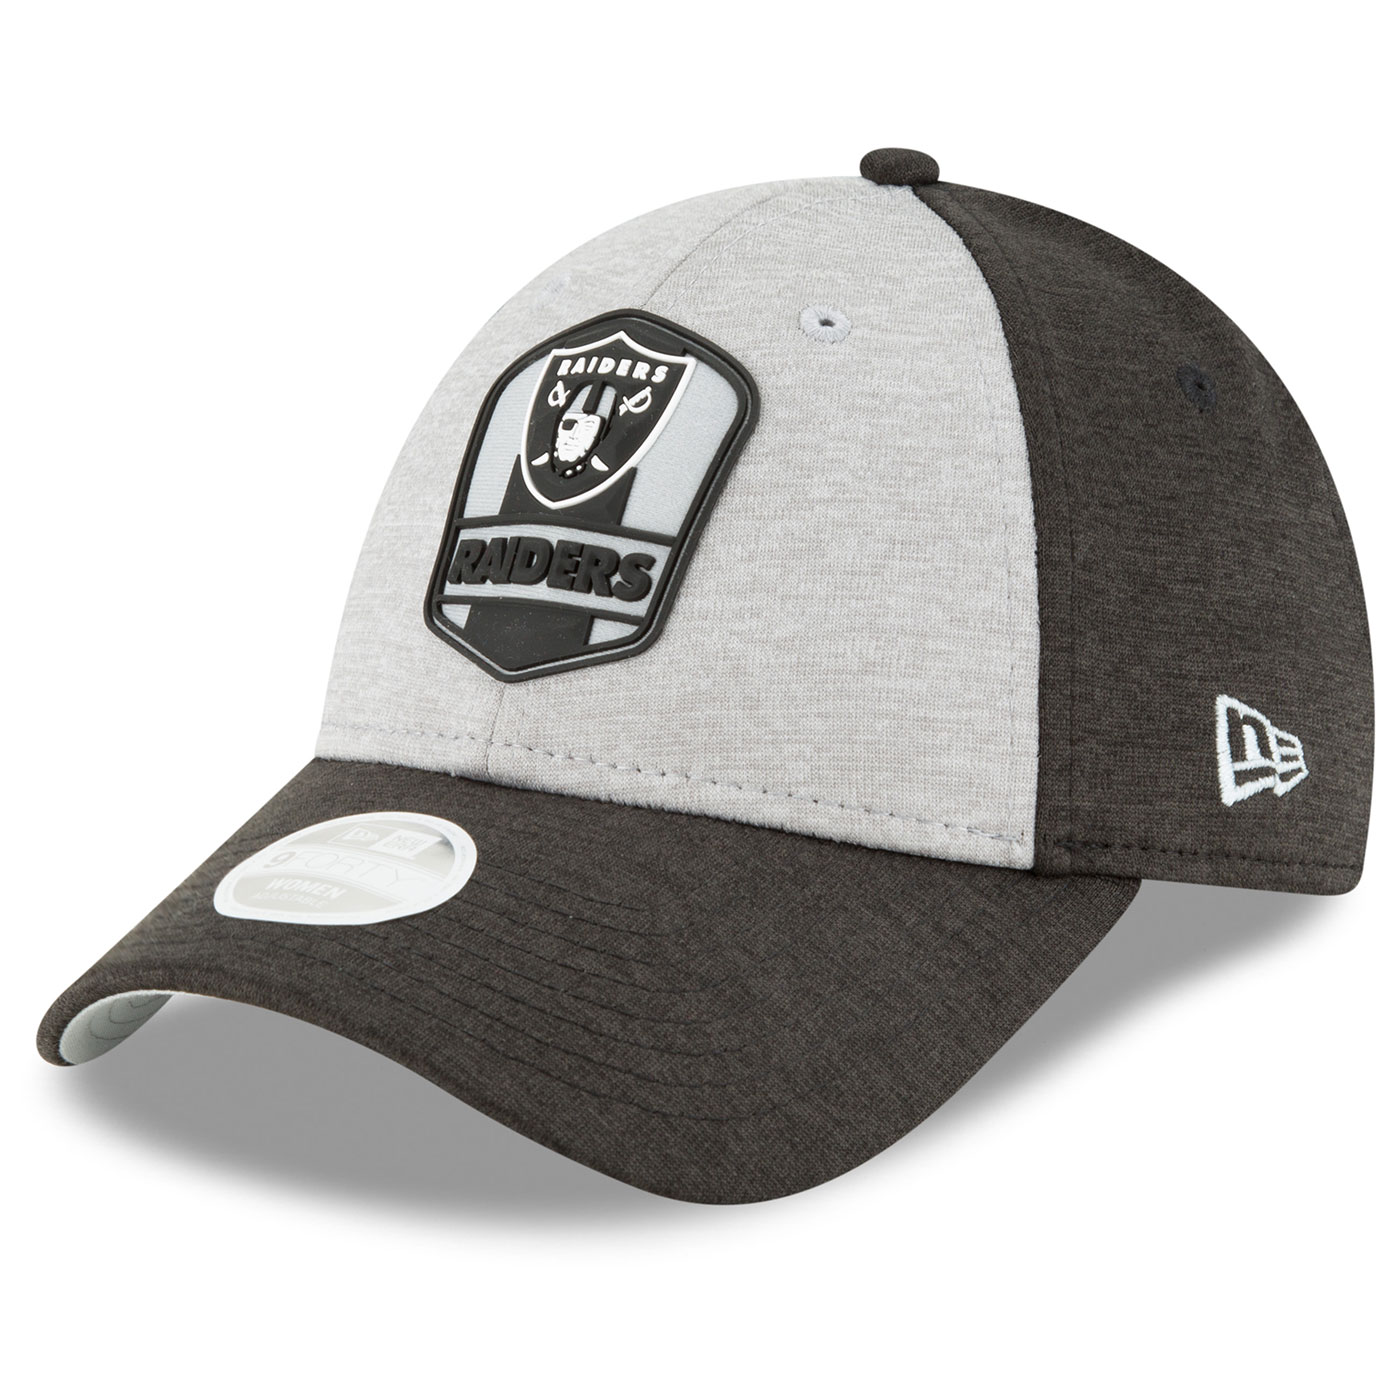 37d98671a Raiders New Era 9Forty 2018 Official Sideline Women s Road Cap